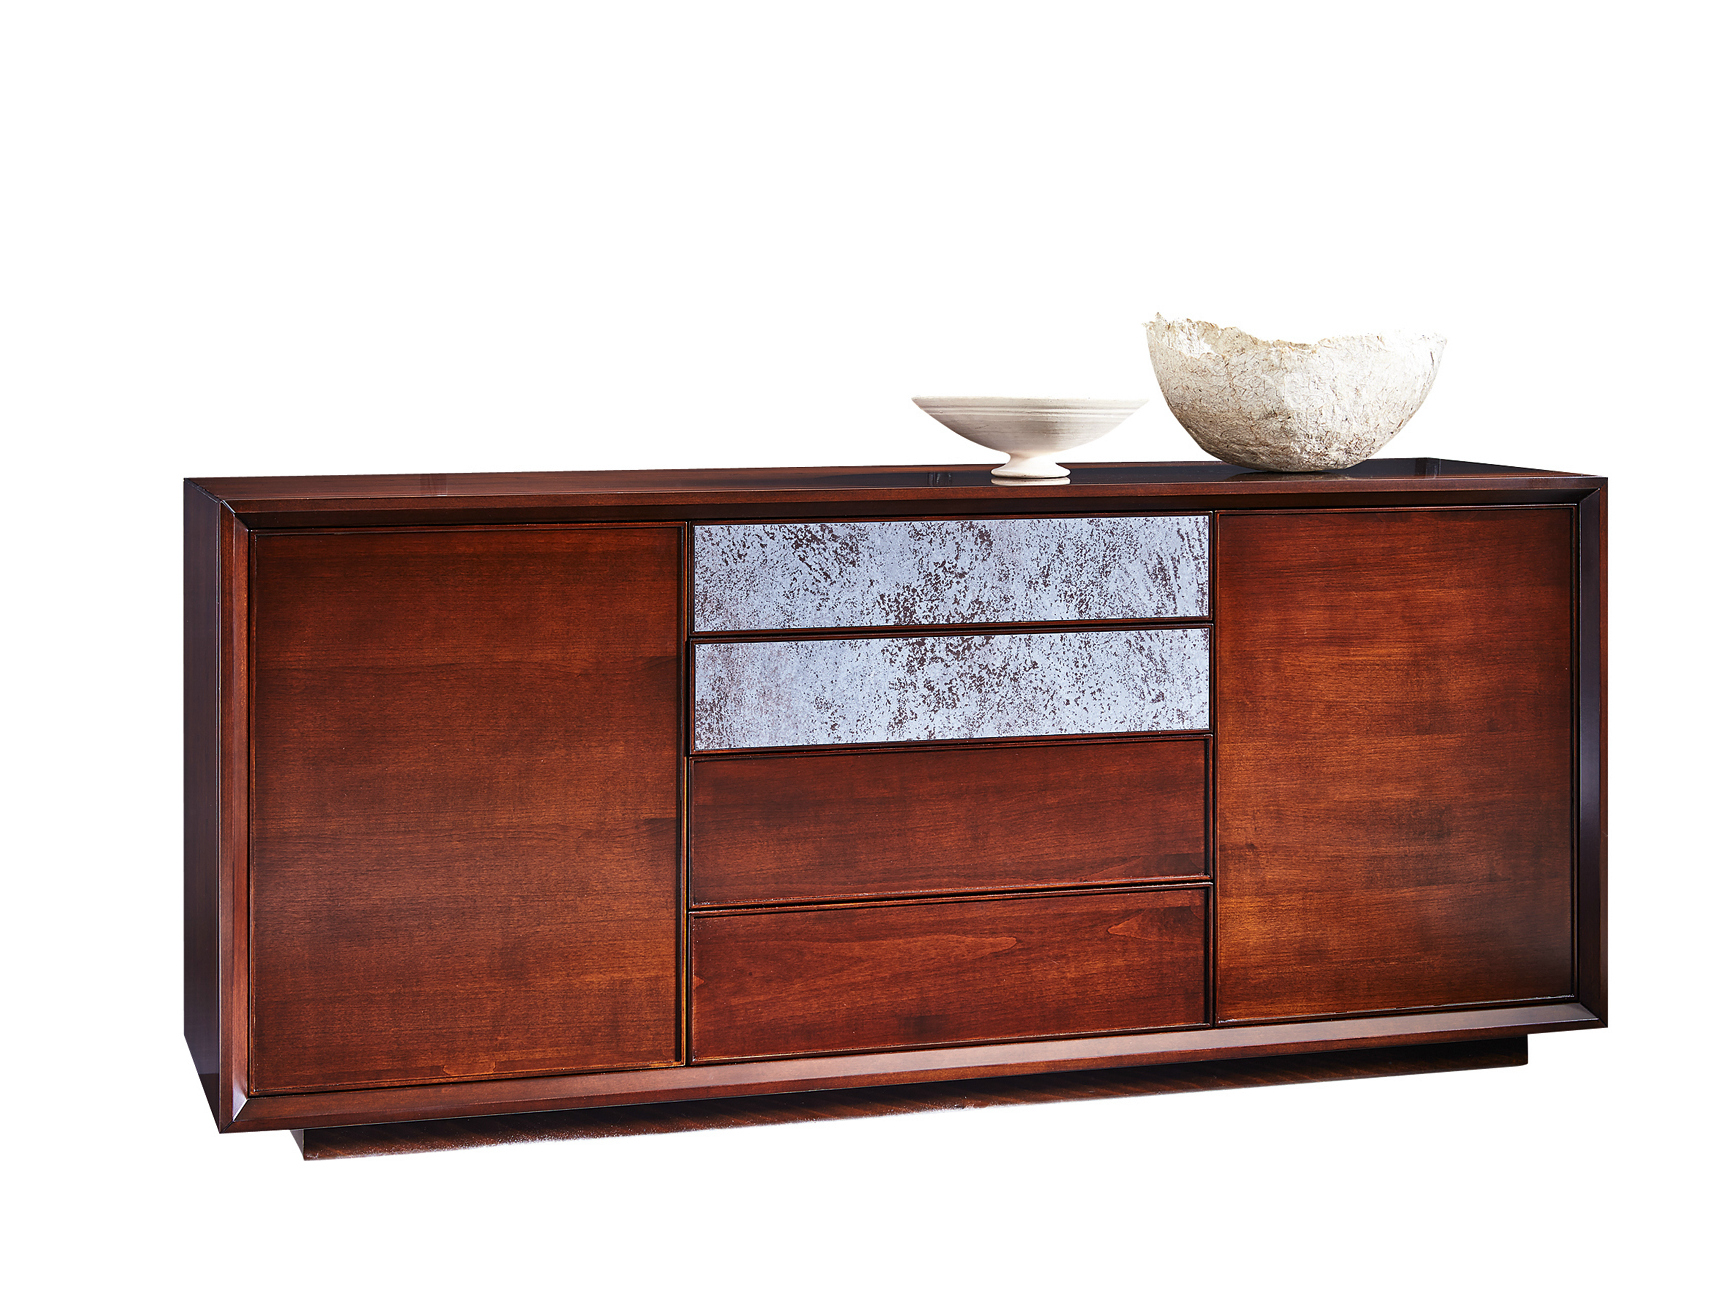 sideboard aus holz mit schubladen grace by selva design tiziano bistaffa. Black Bedroom Furniture Sets. Home Design Ideas